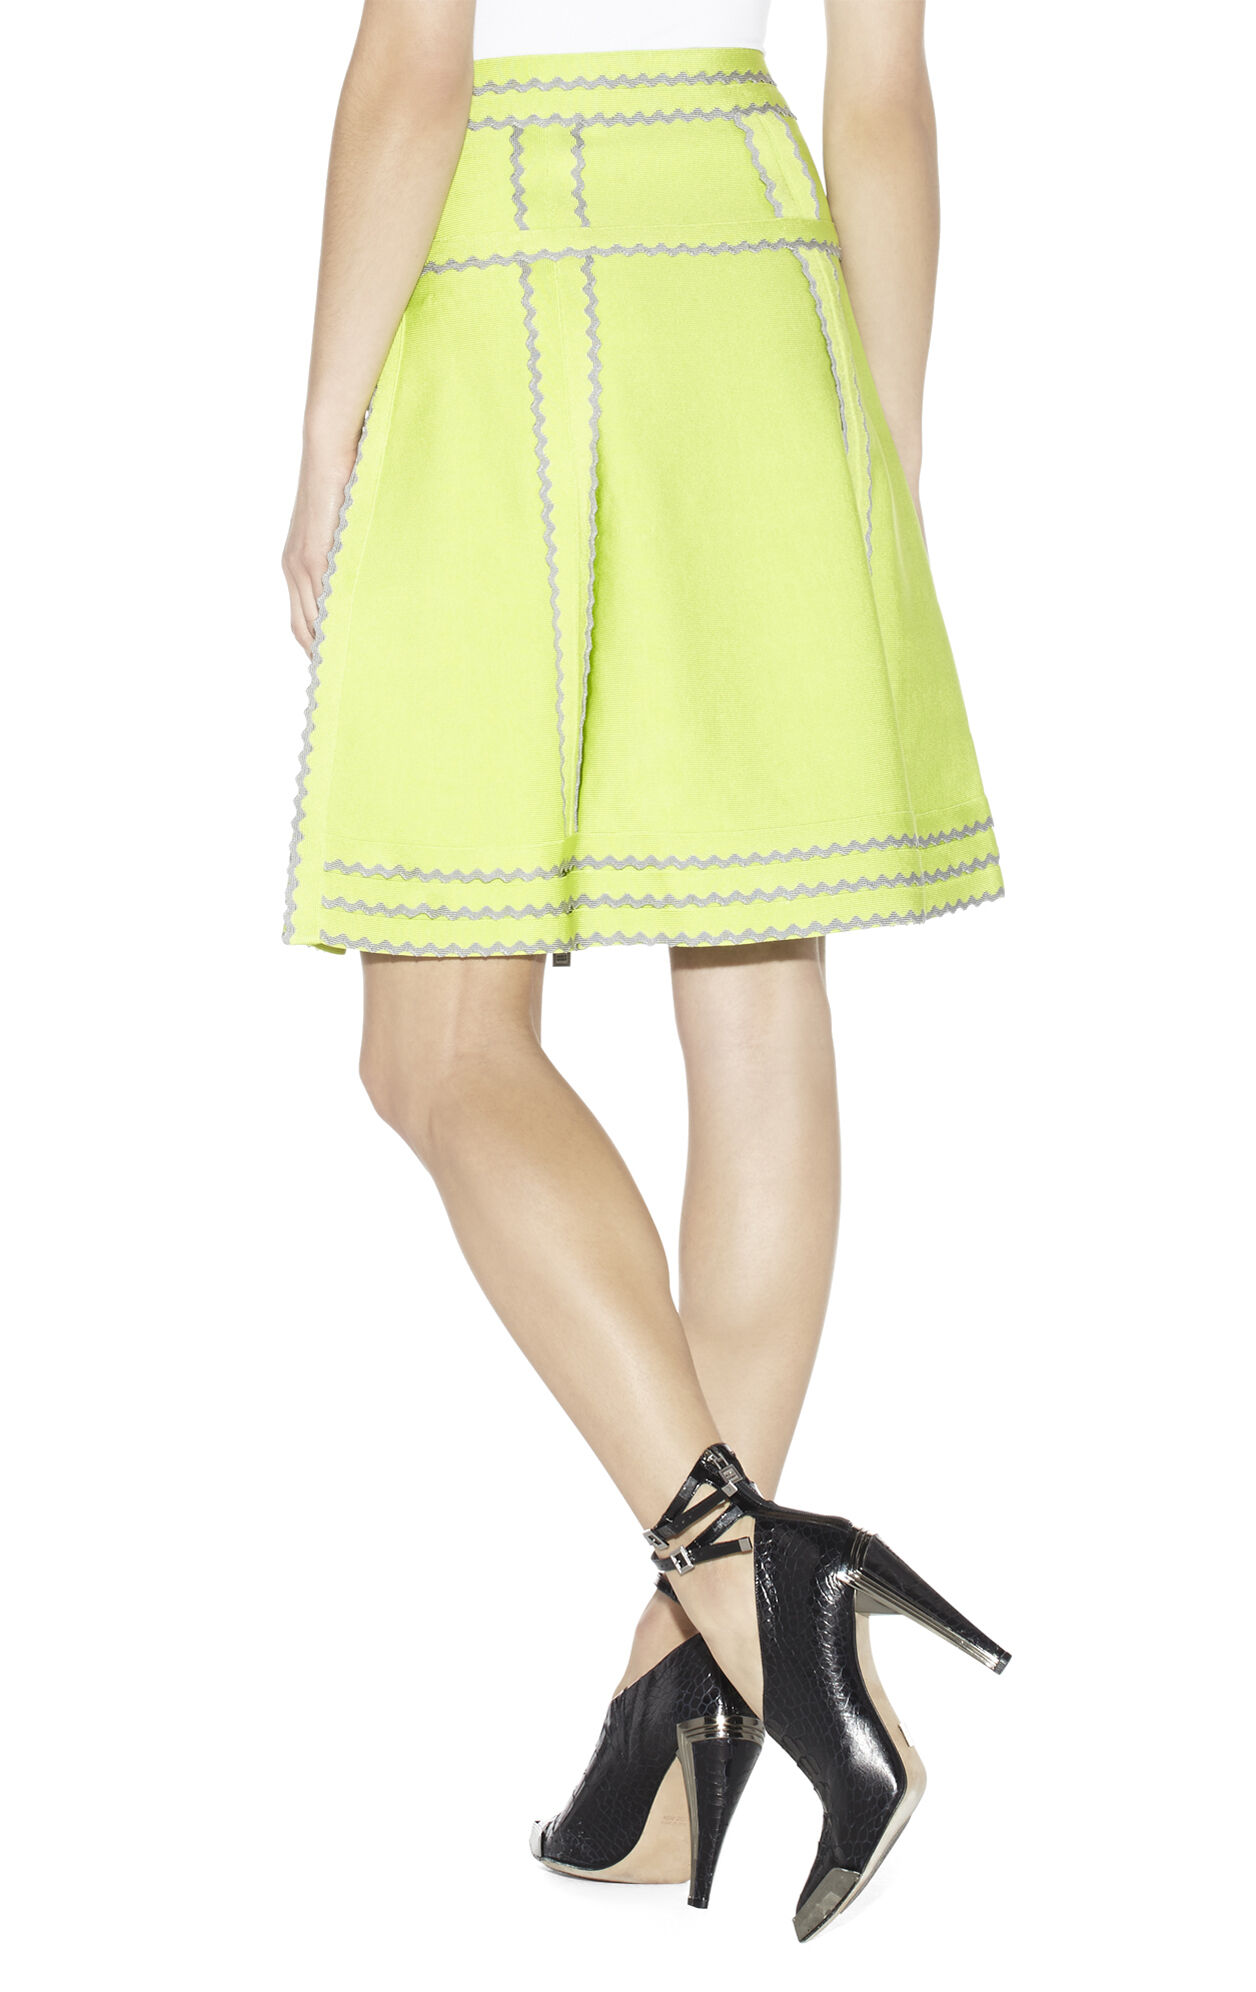 NIKITA TIPPED SCALLOPED SKIRT